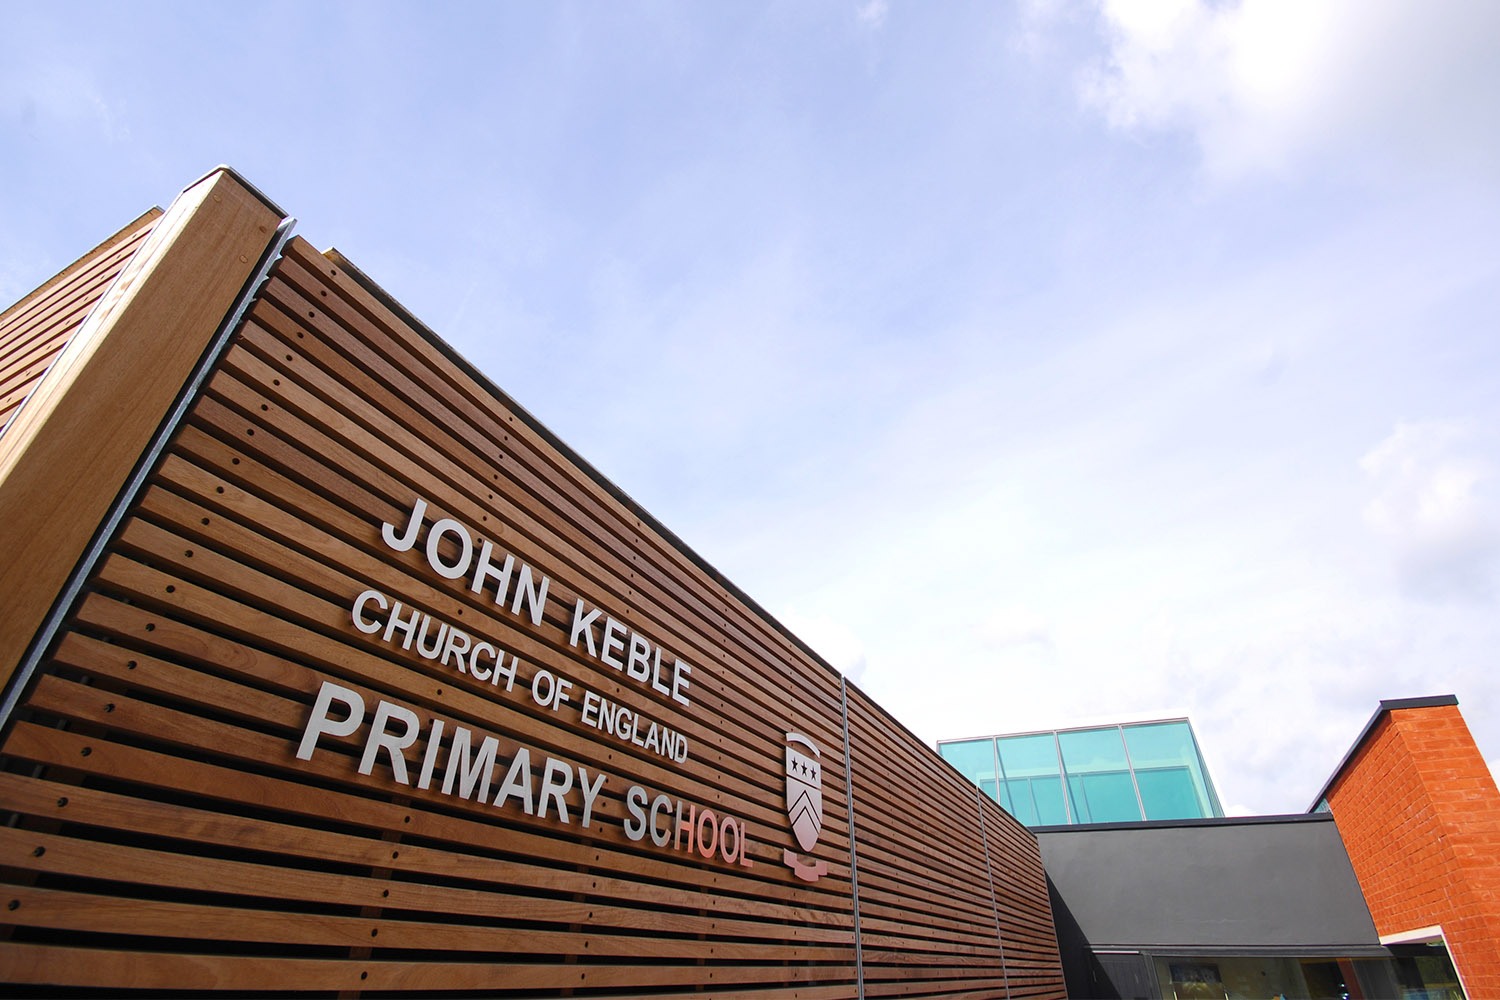 Design Engine John Keble Primary School